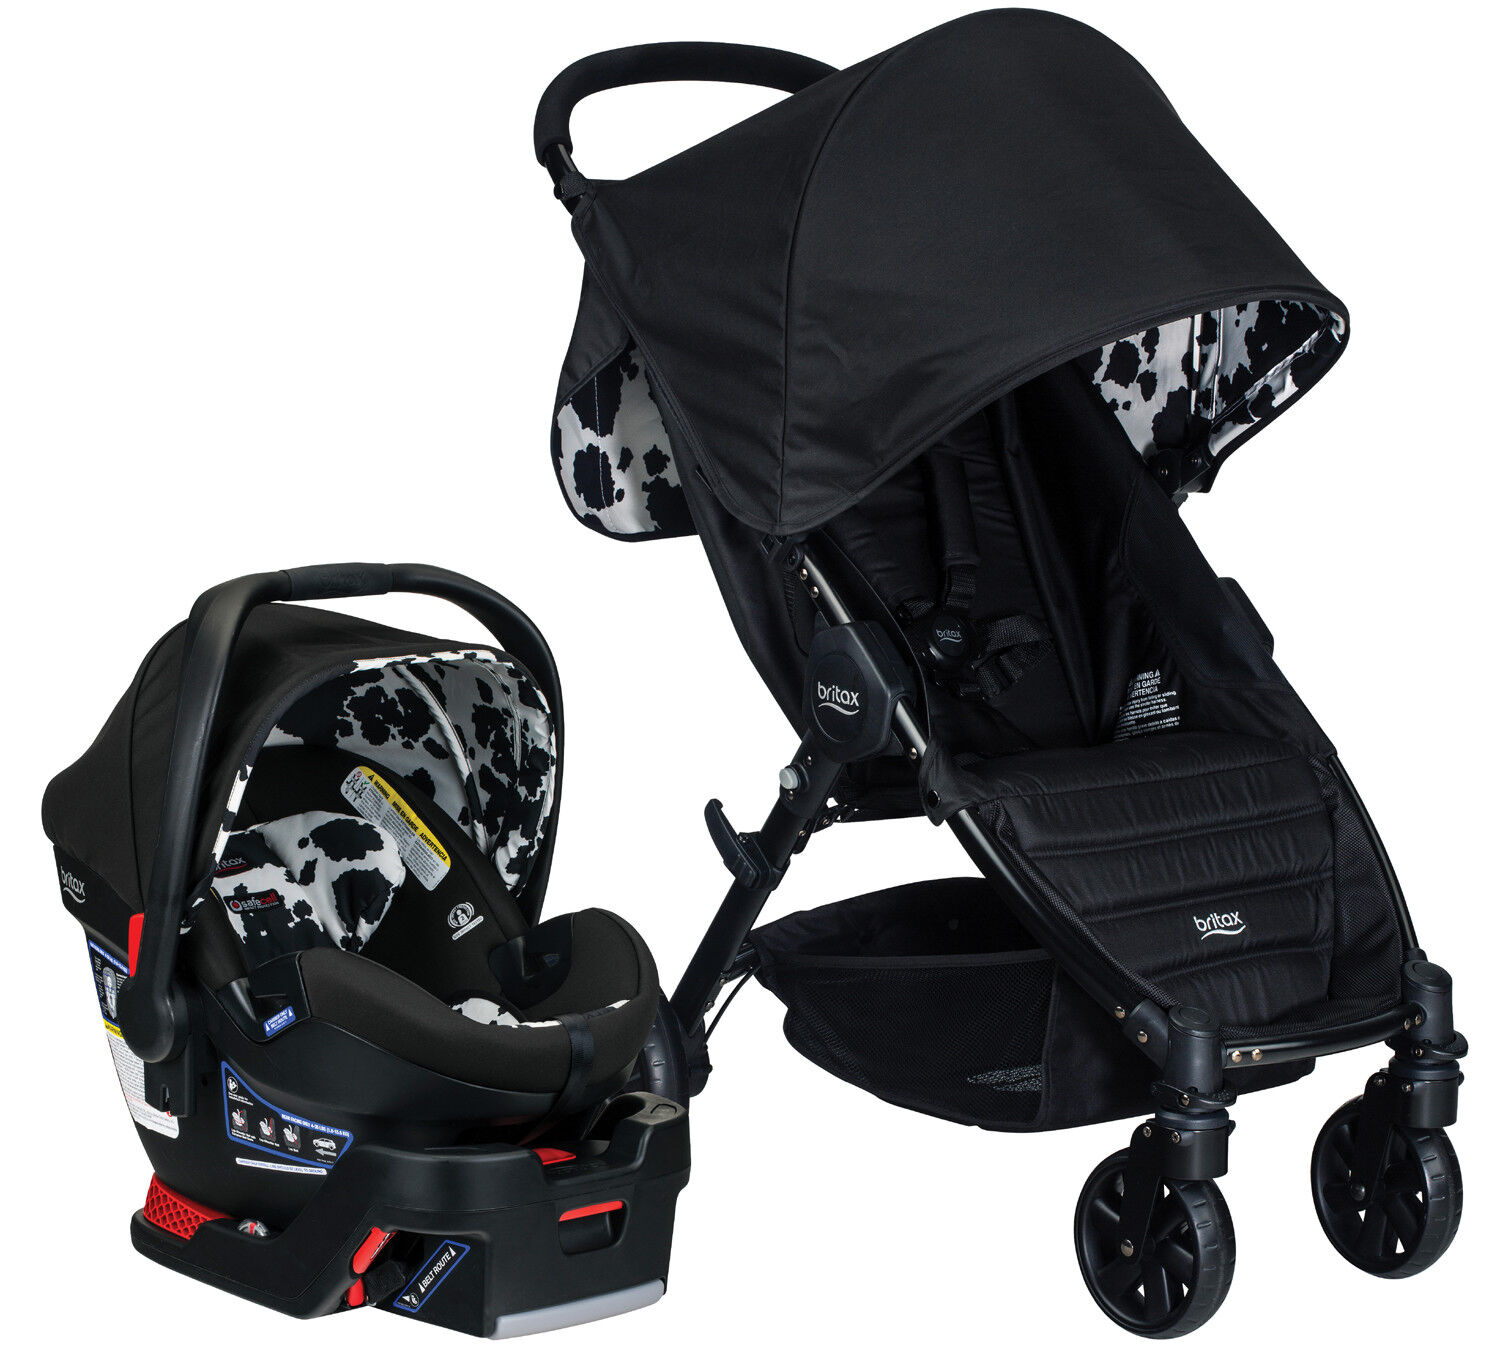 Britax Car Seat With Stroller Britax Pathway Travel System Stroller W B Safe Ultra Infant Car Seat Cowmooflage